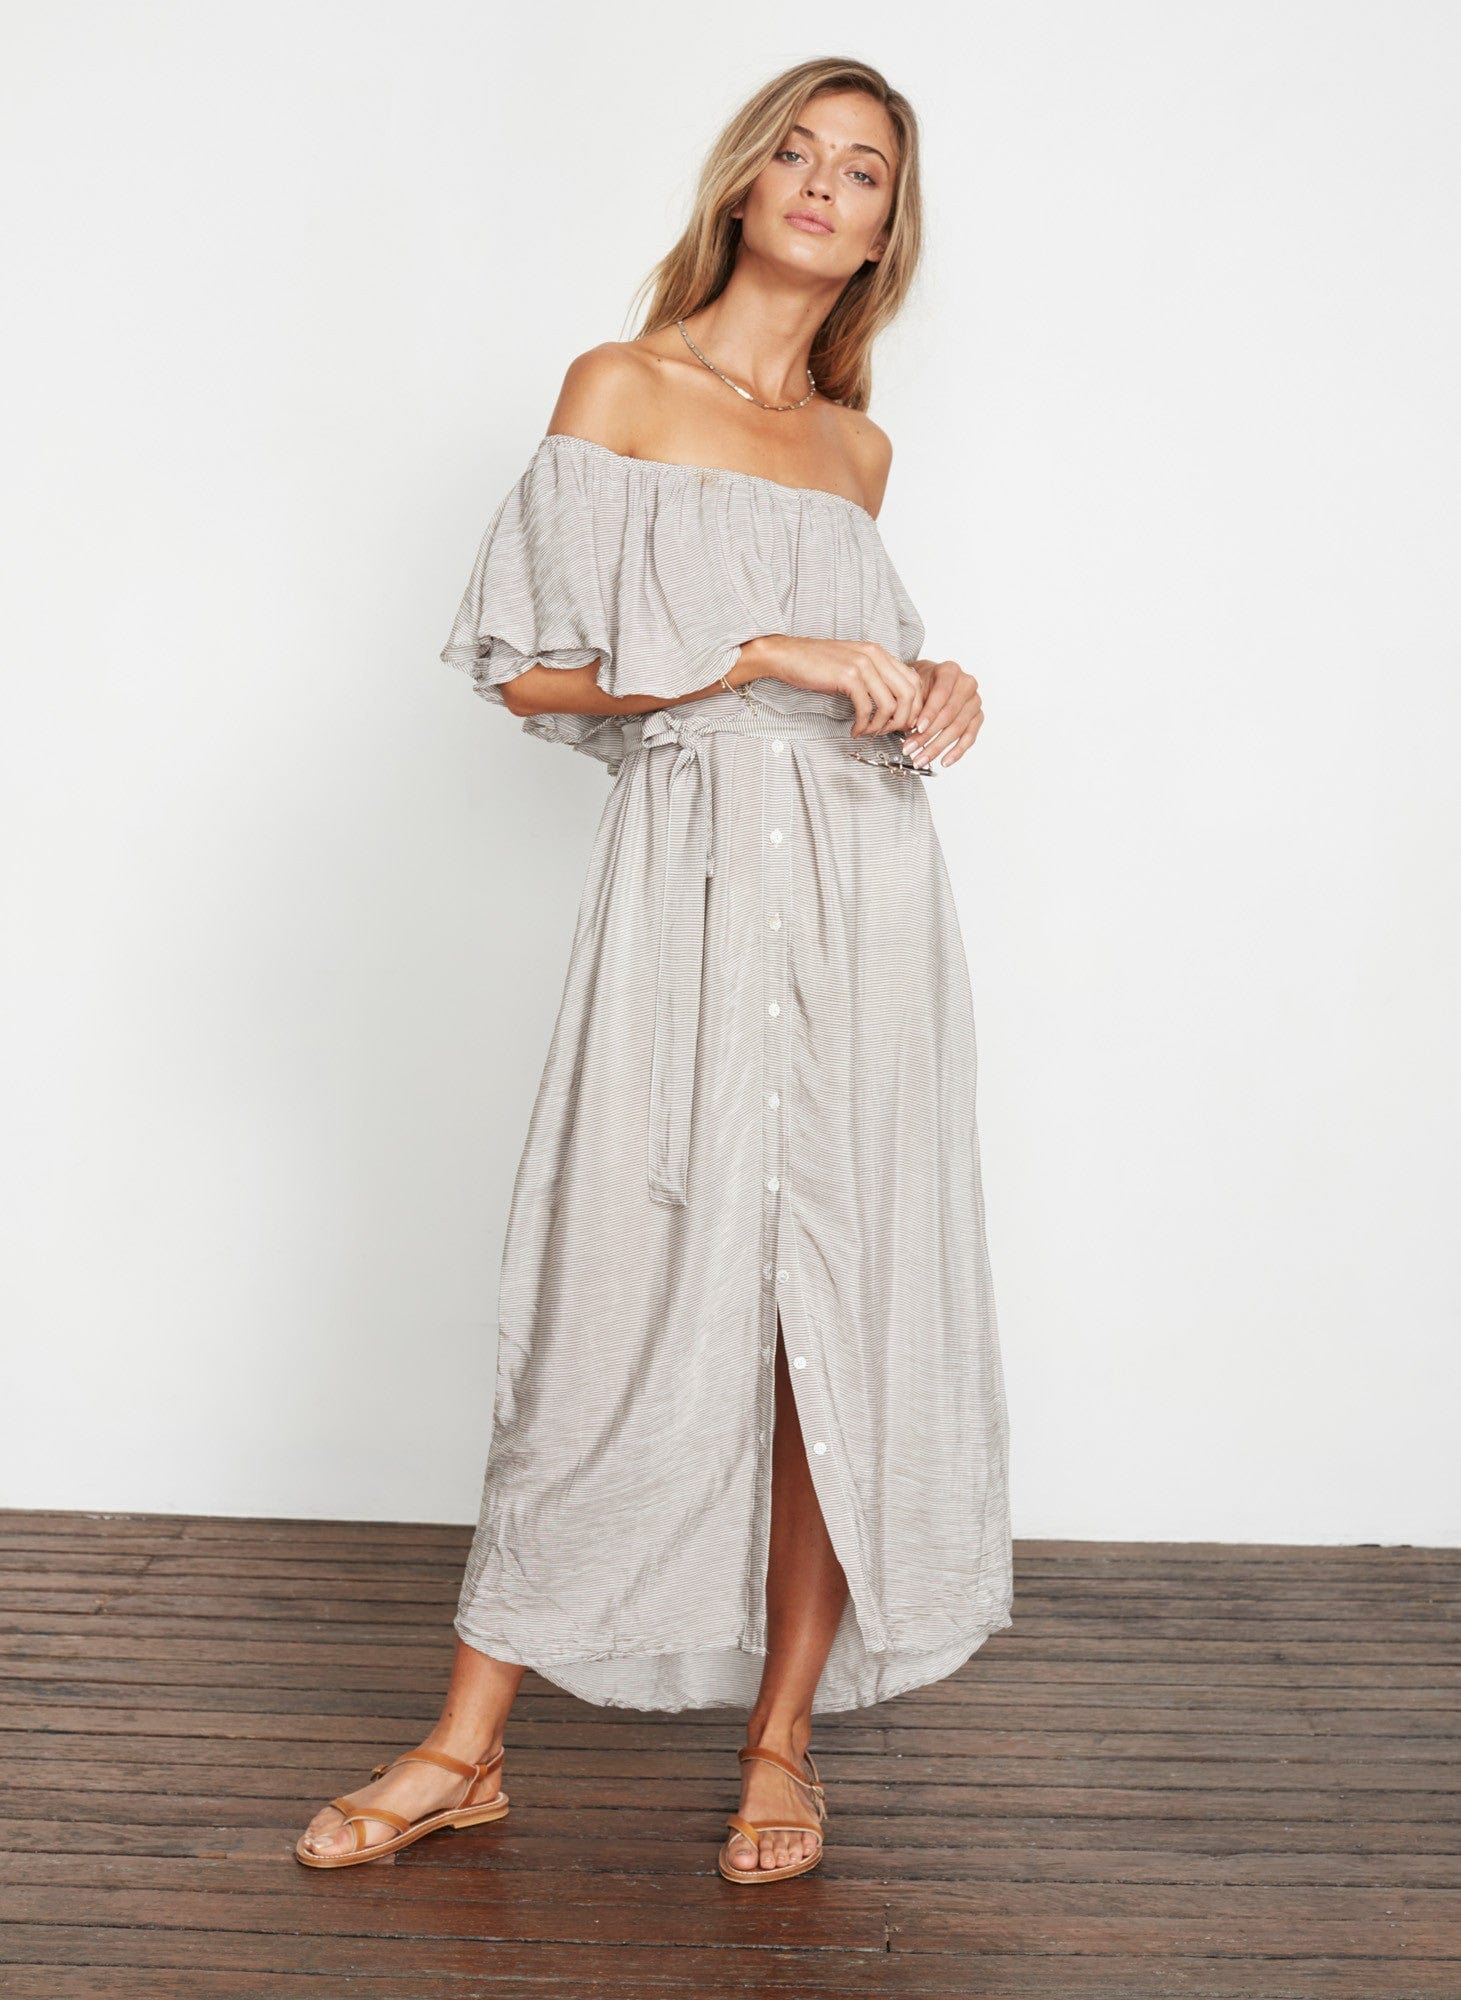 CASCAIS STRIPE PRINT - GREY - MAJORCA MAXI DRESS